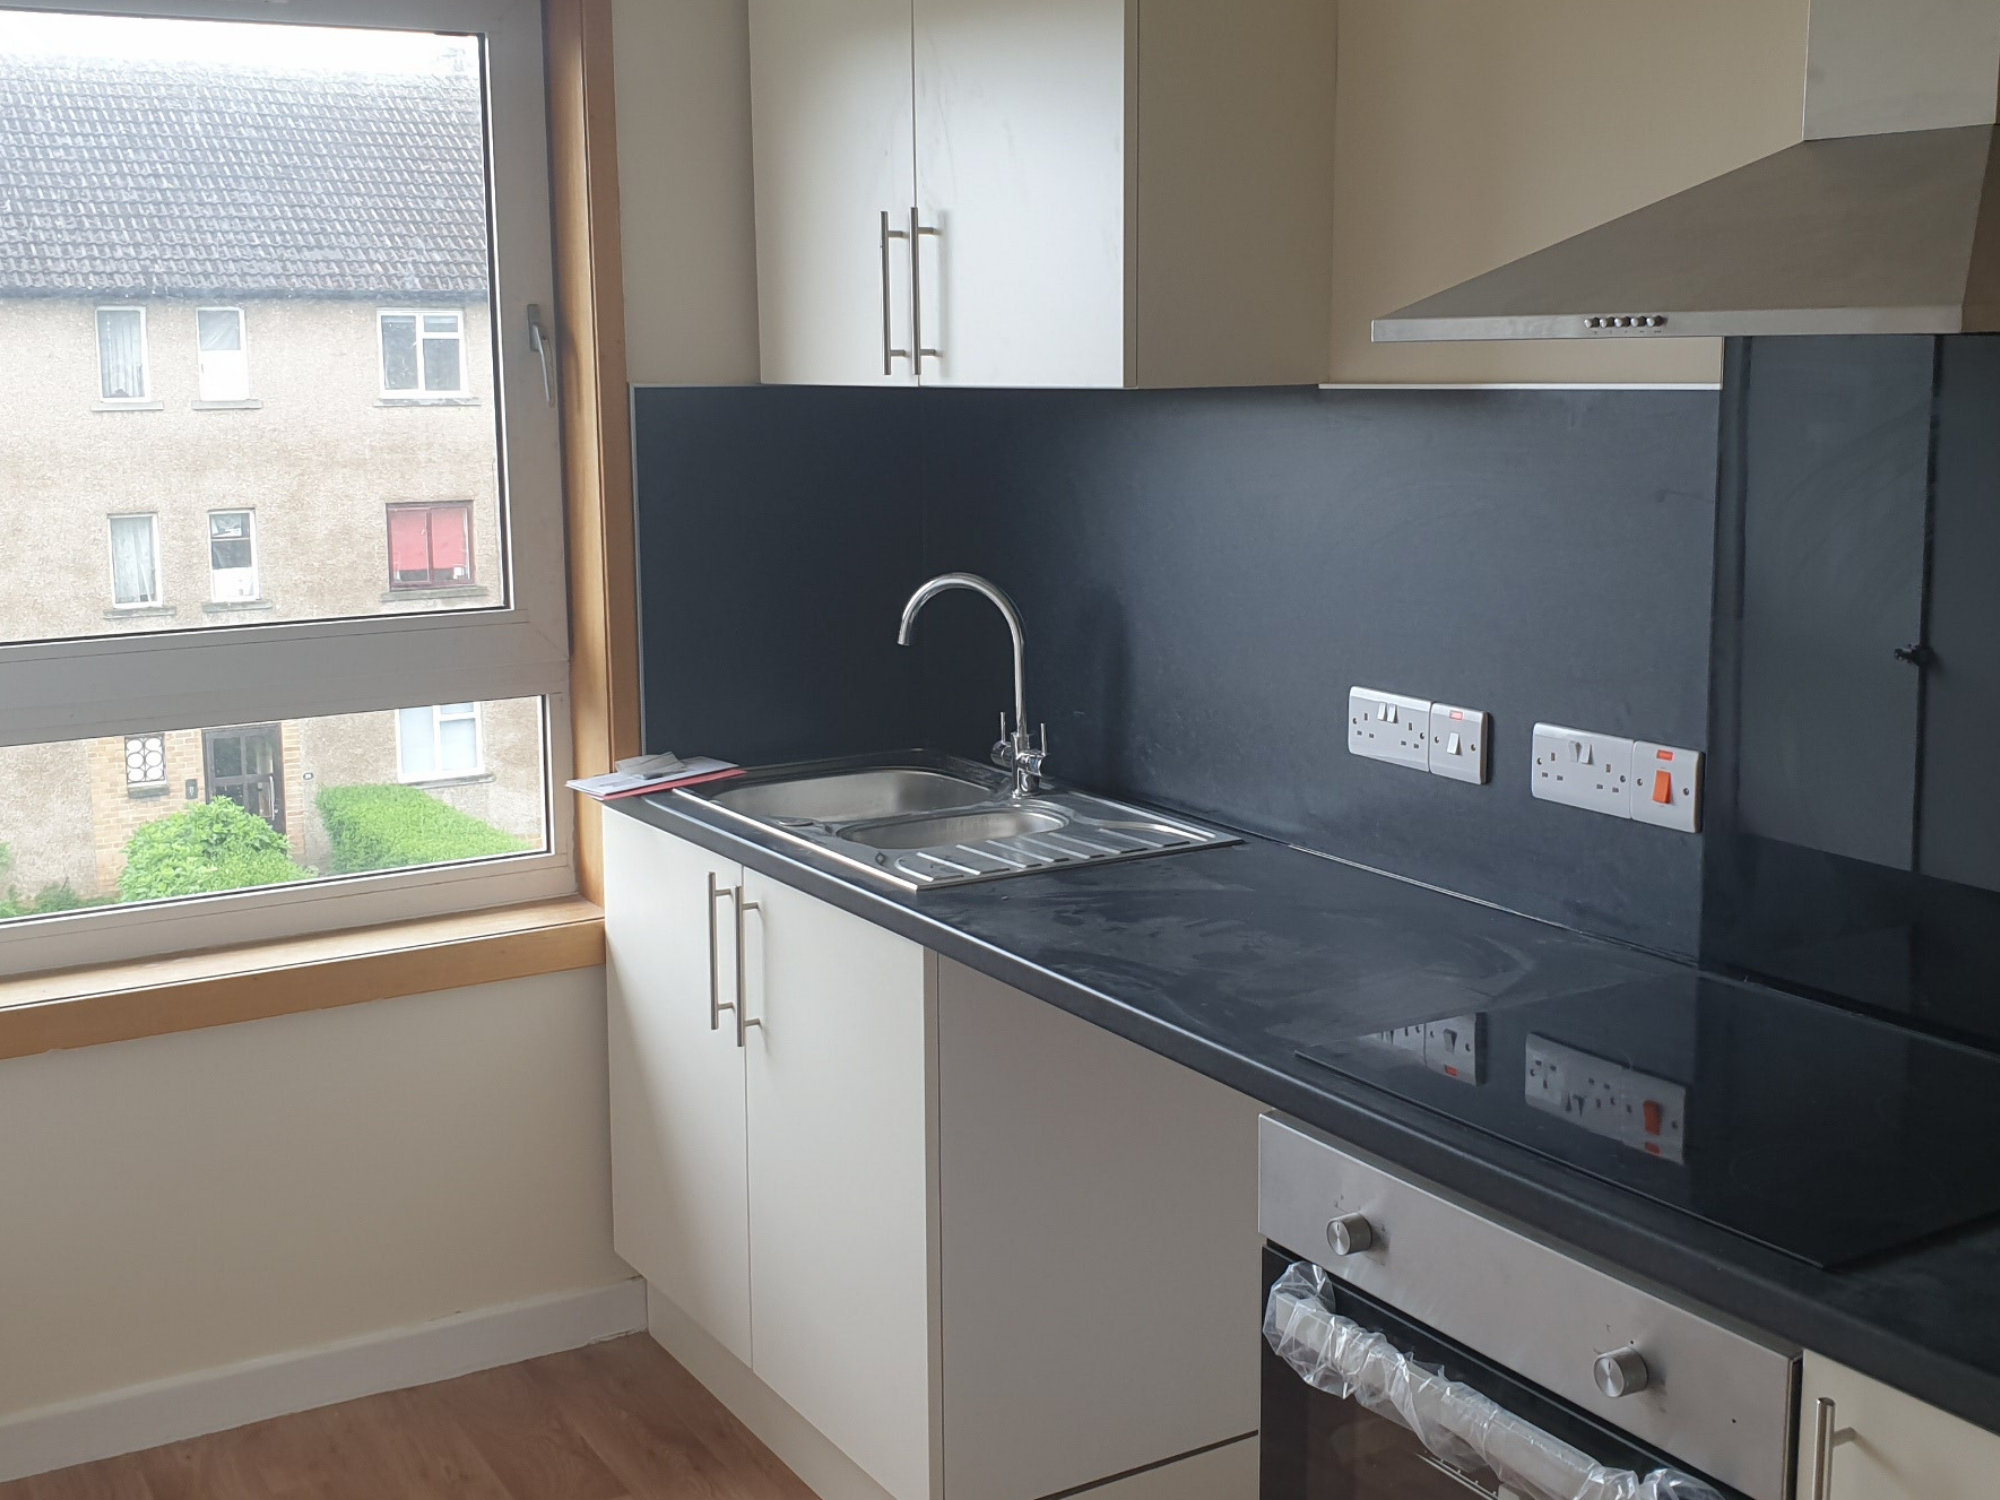 Full kitchen refit by Colcro at Kenmay Gardens